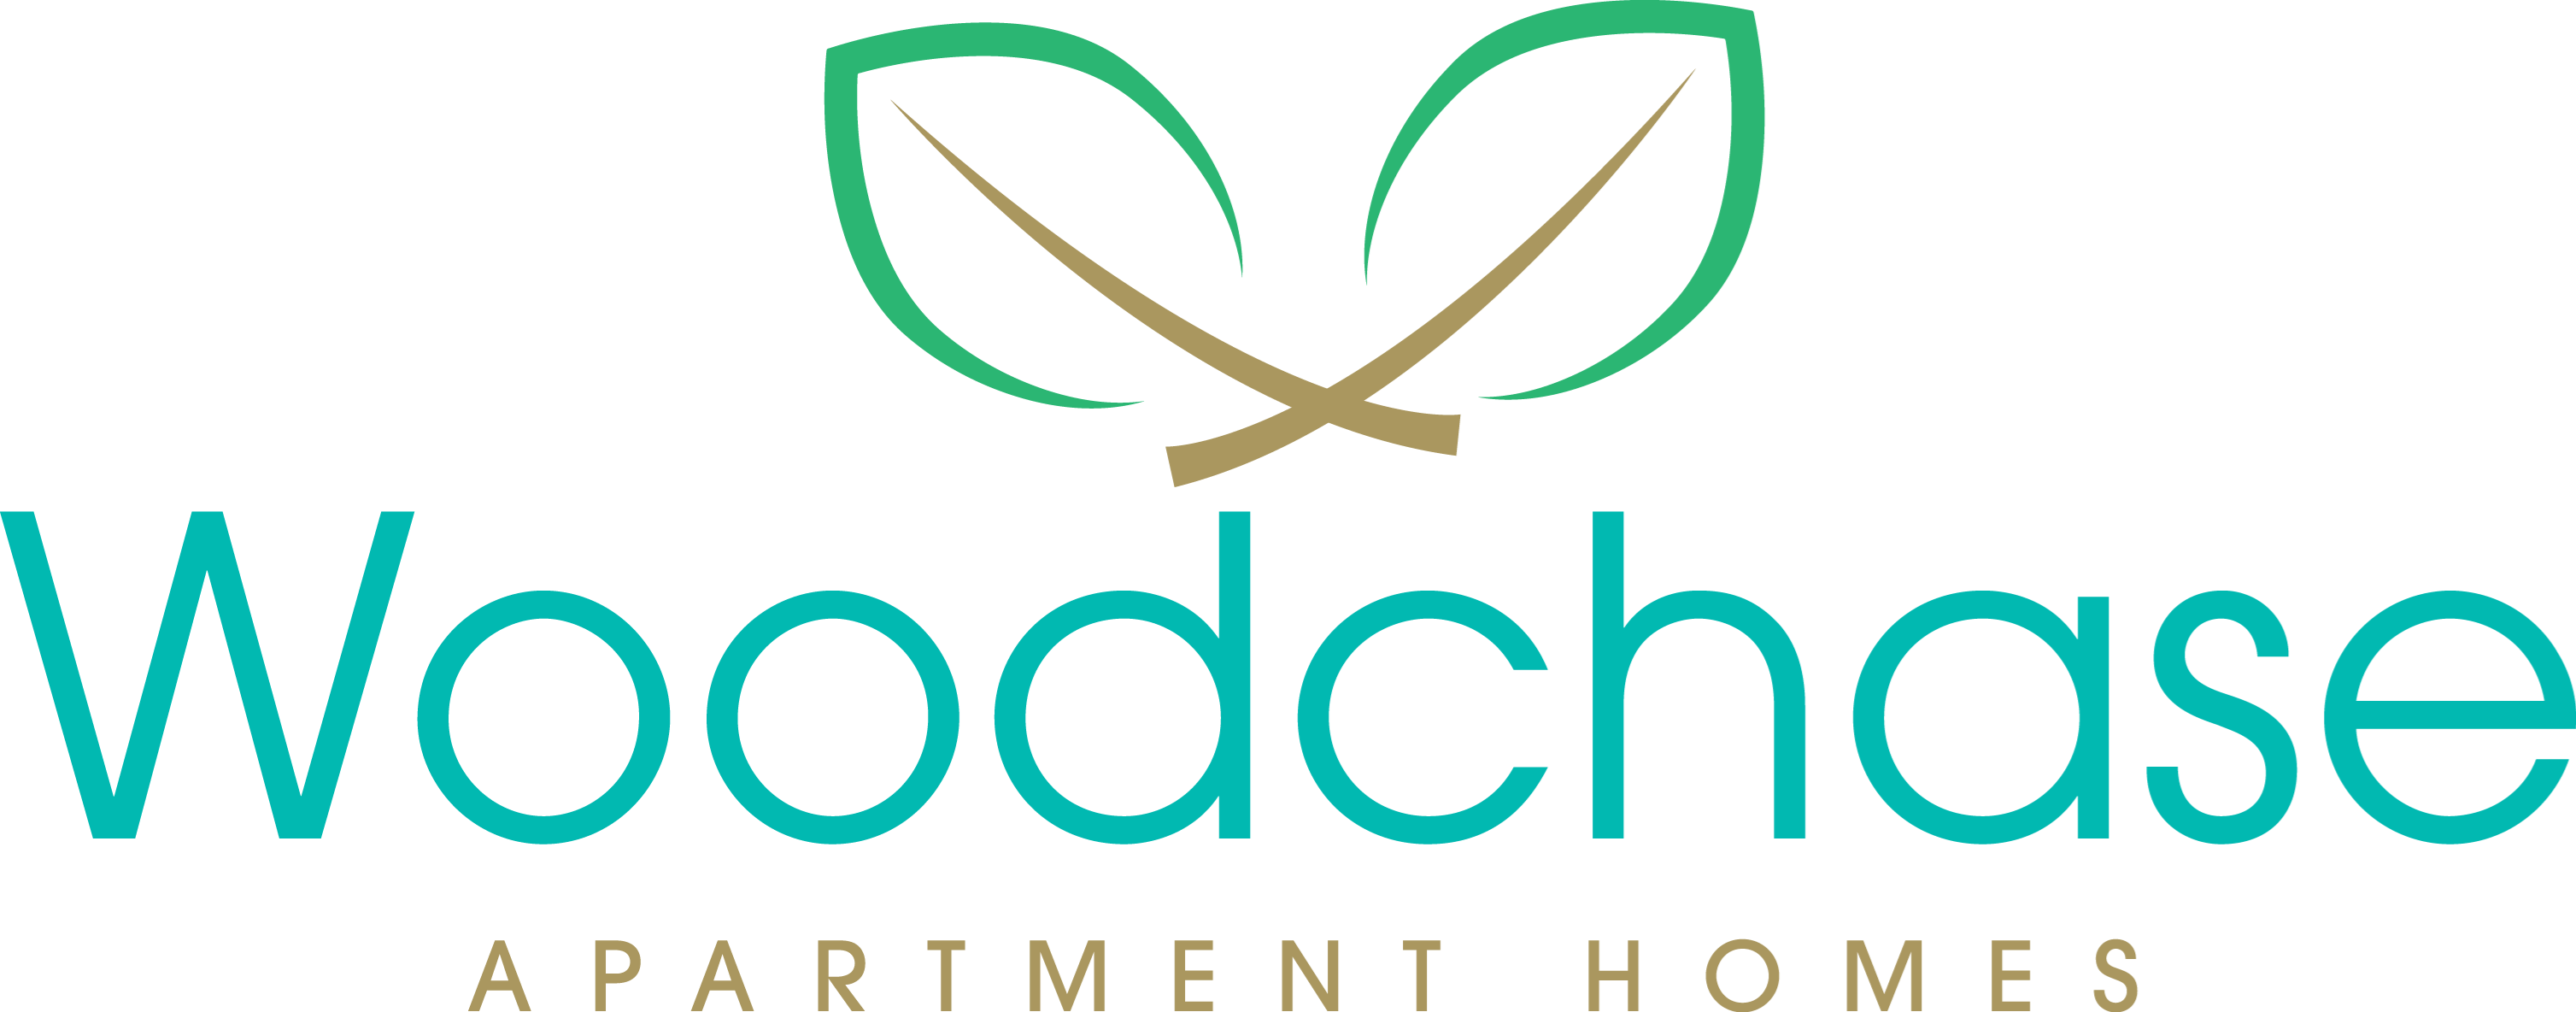 Woodchase Club Property Logo 6